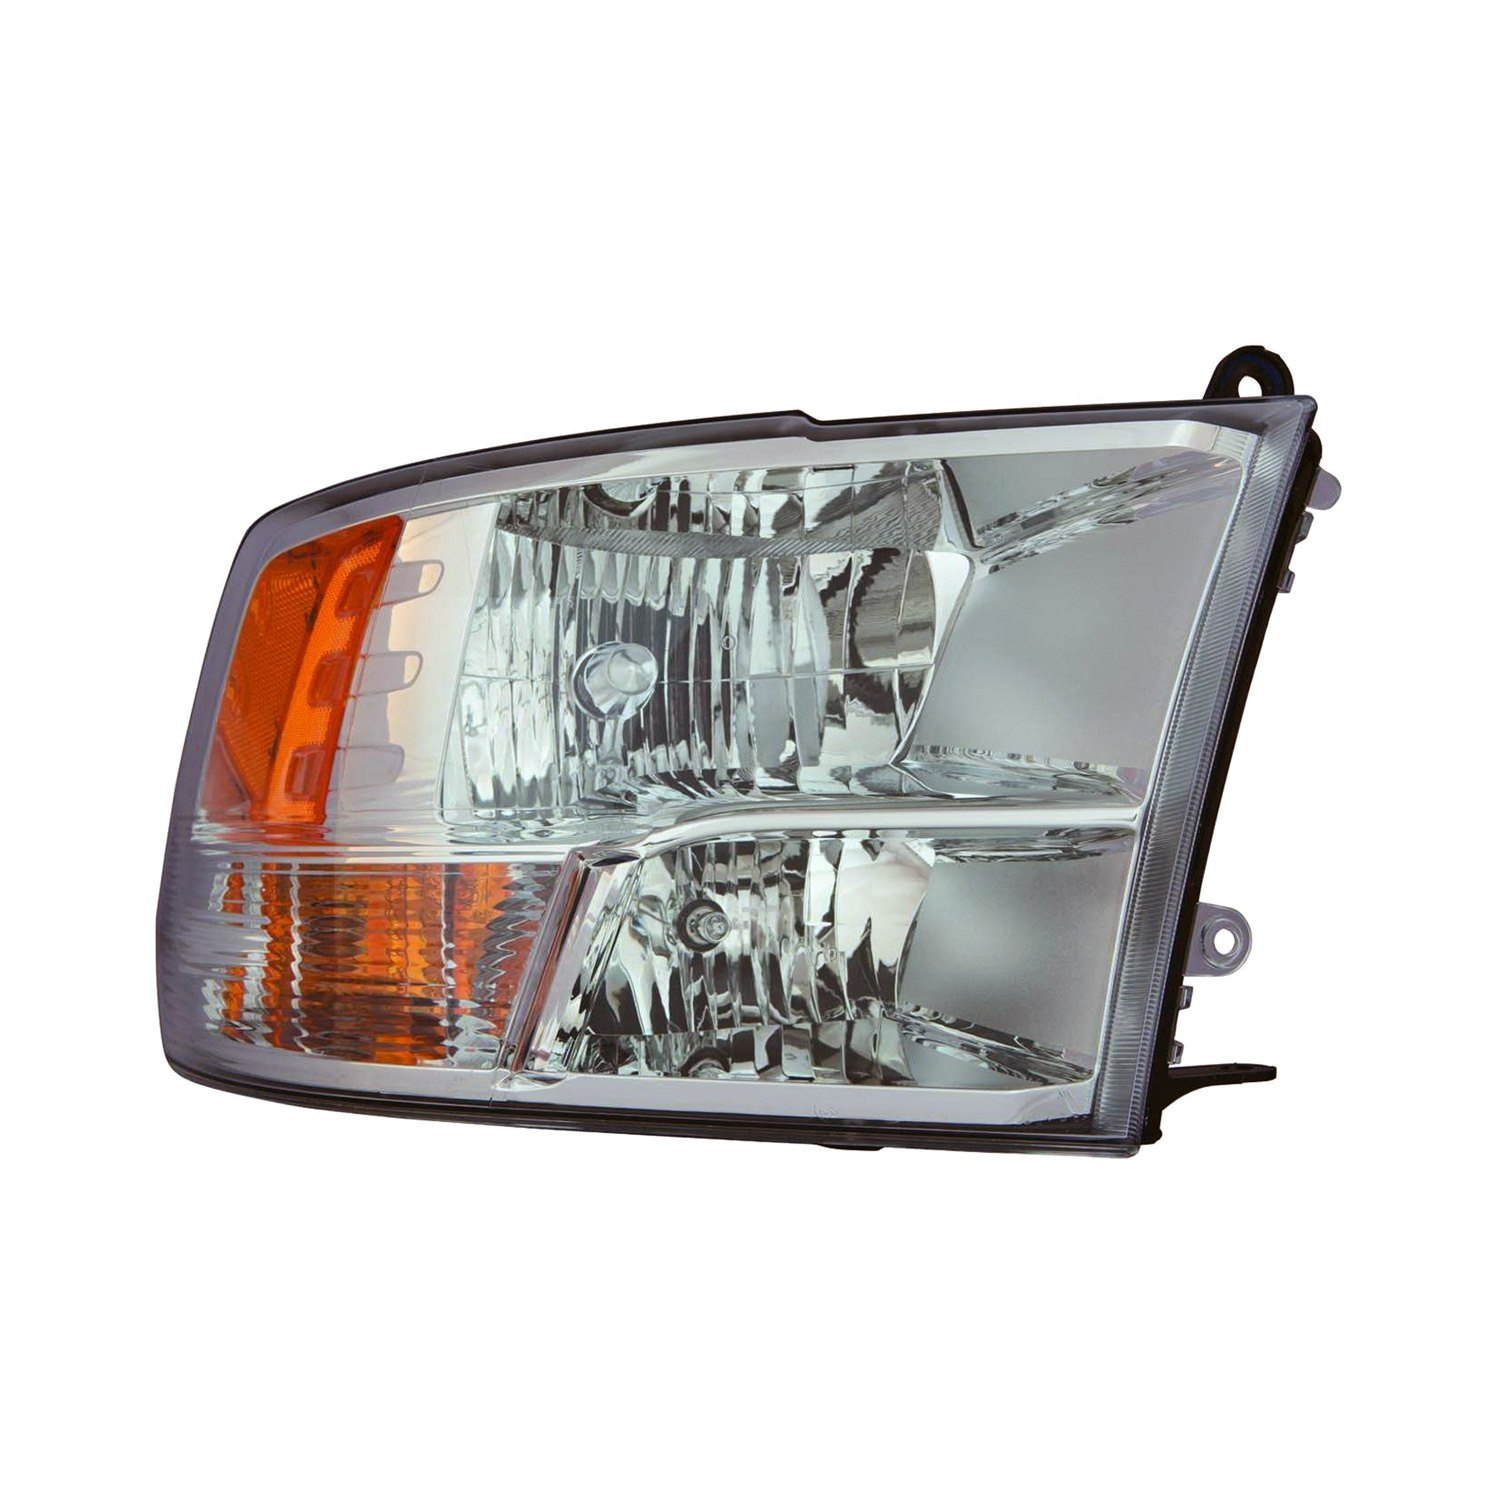 buy cheap Replace® CH2503242N - Passenger Side Replacement Headlight for 2015 RAM 1500 TRUCK Ebay & Amazon